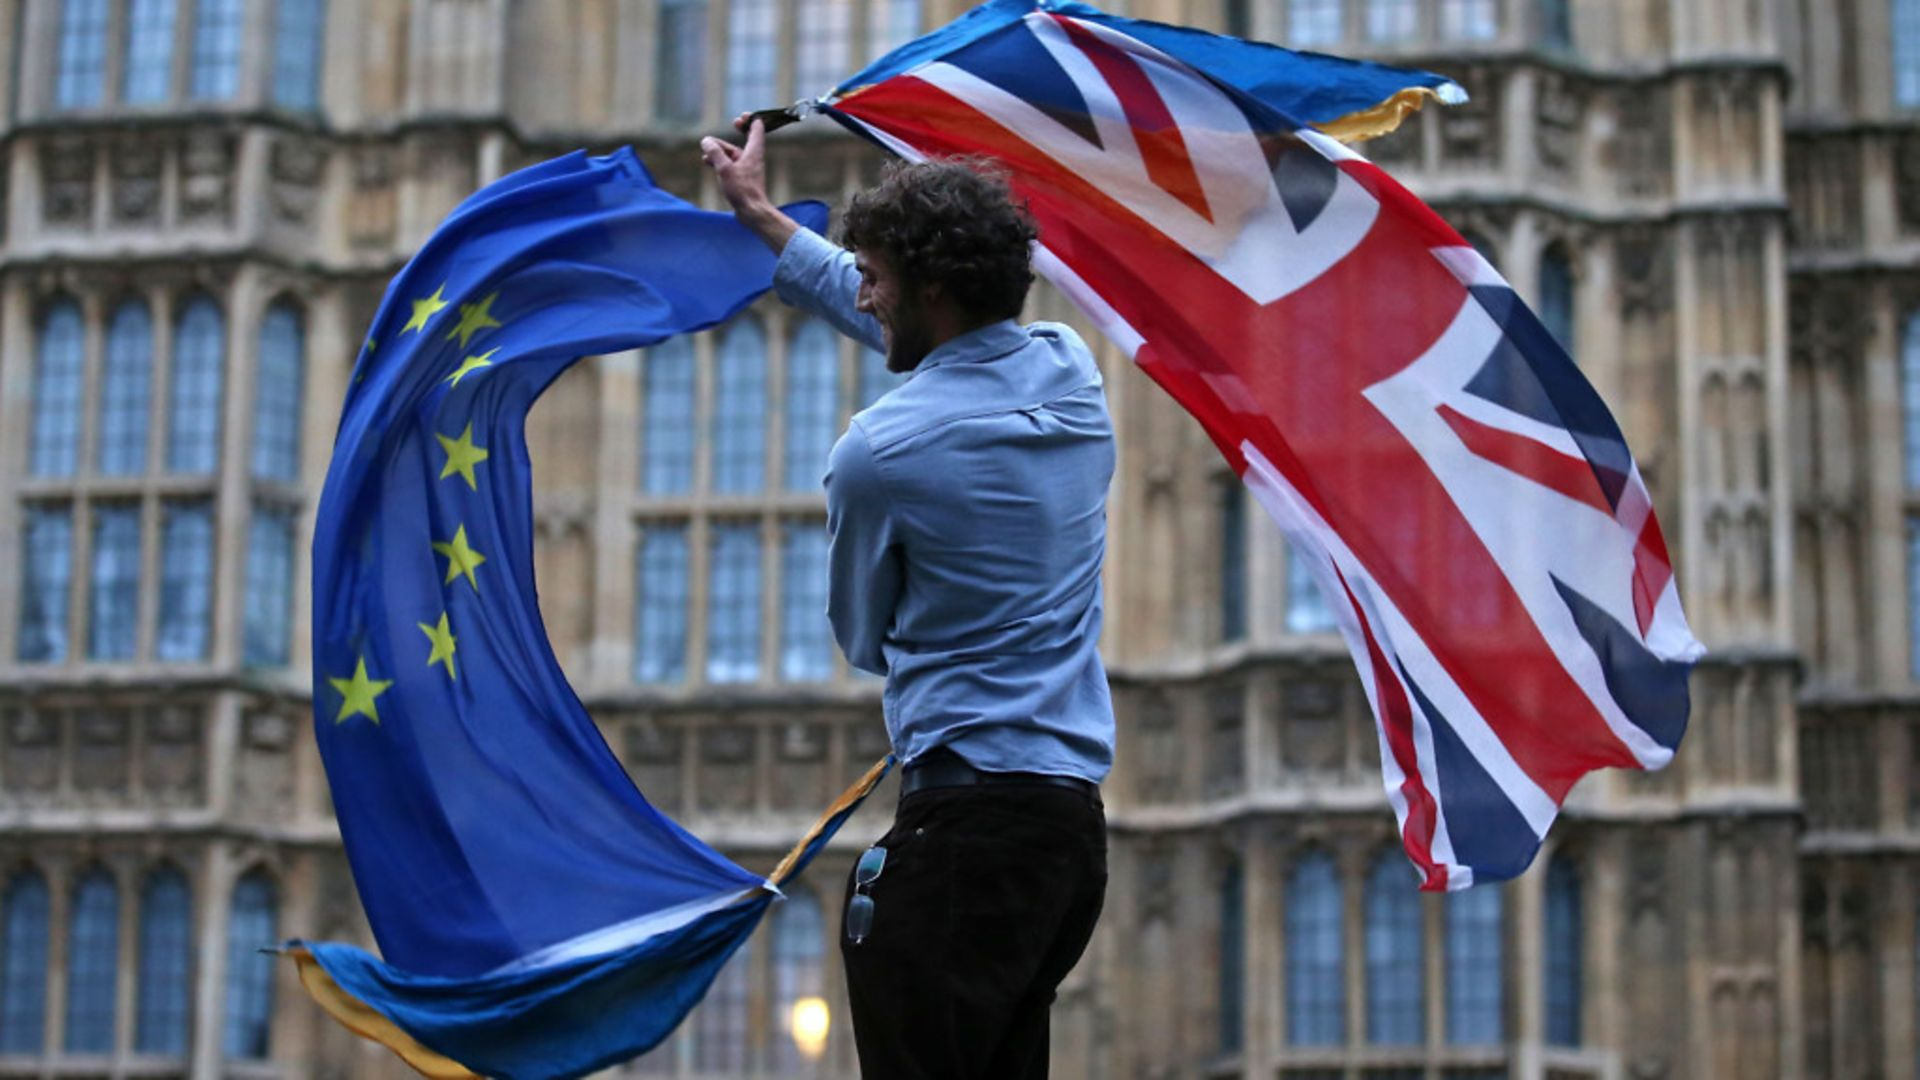 A man waves both a Union flag and a European flag together on College Green outside the Houses of Parliament - Credit: AFP via Getty Images